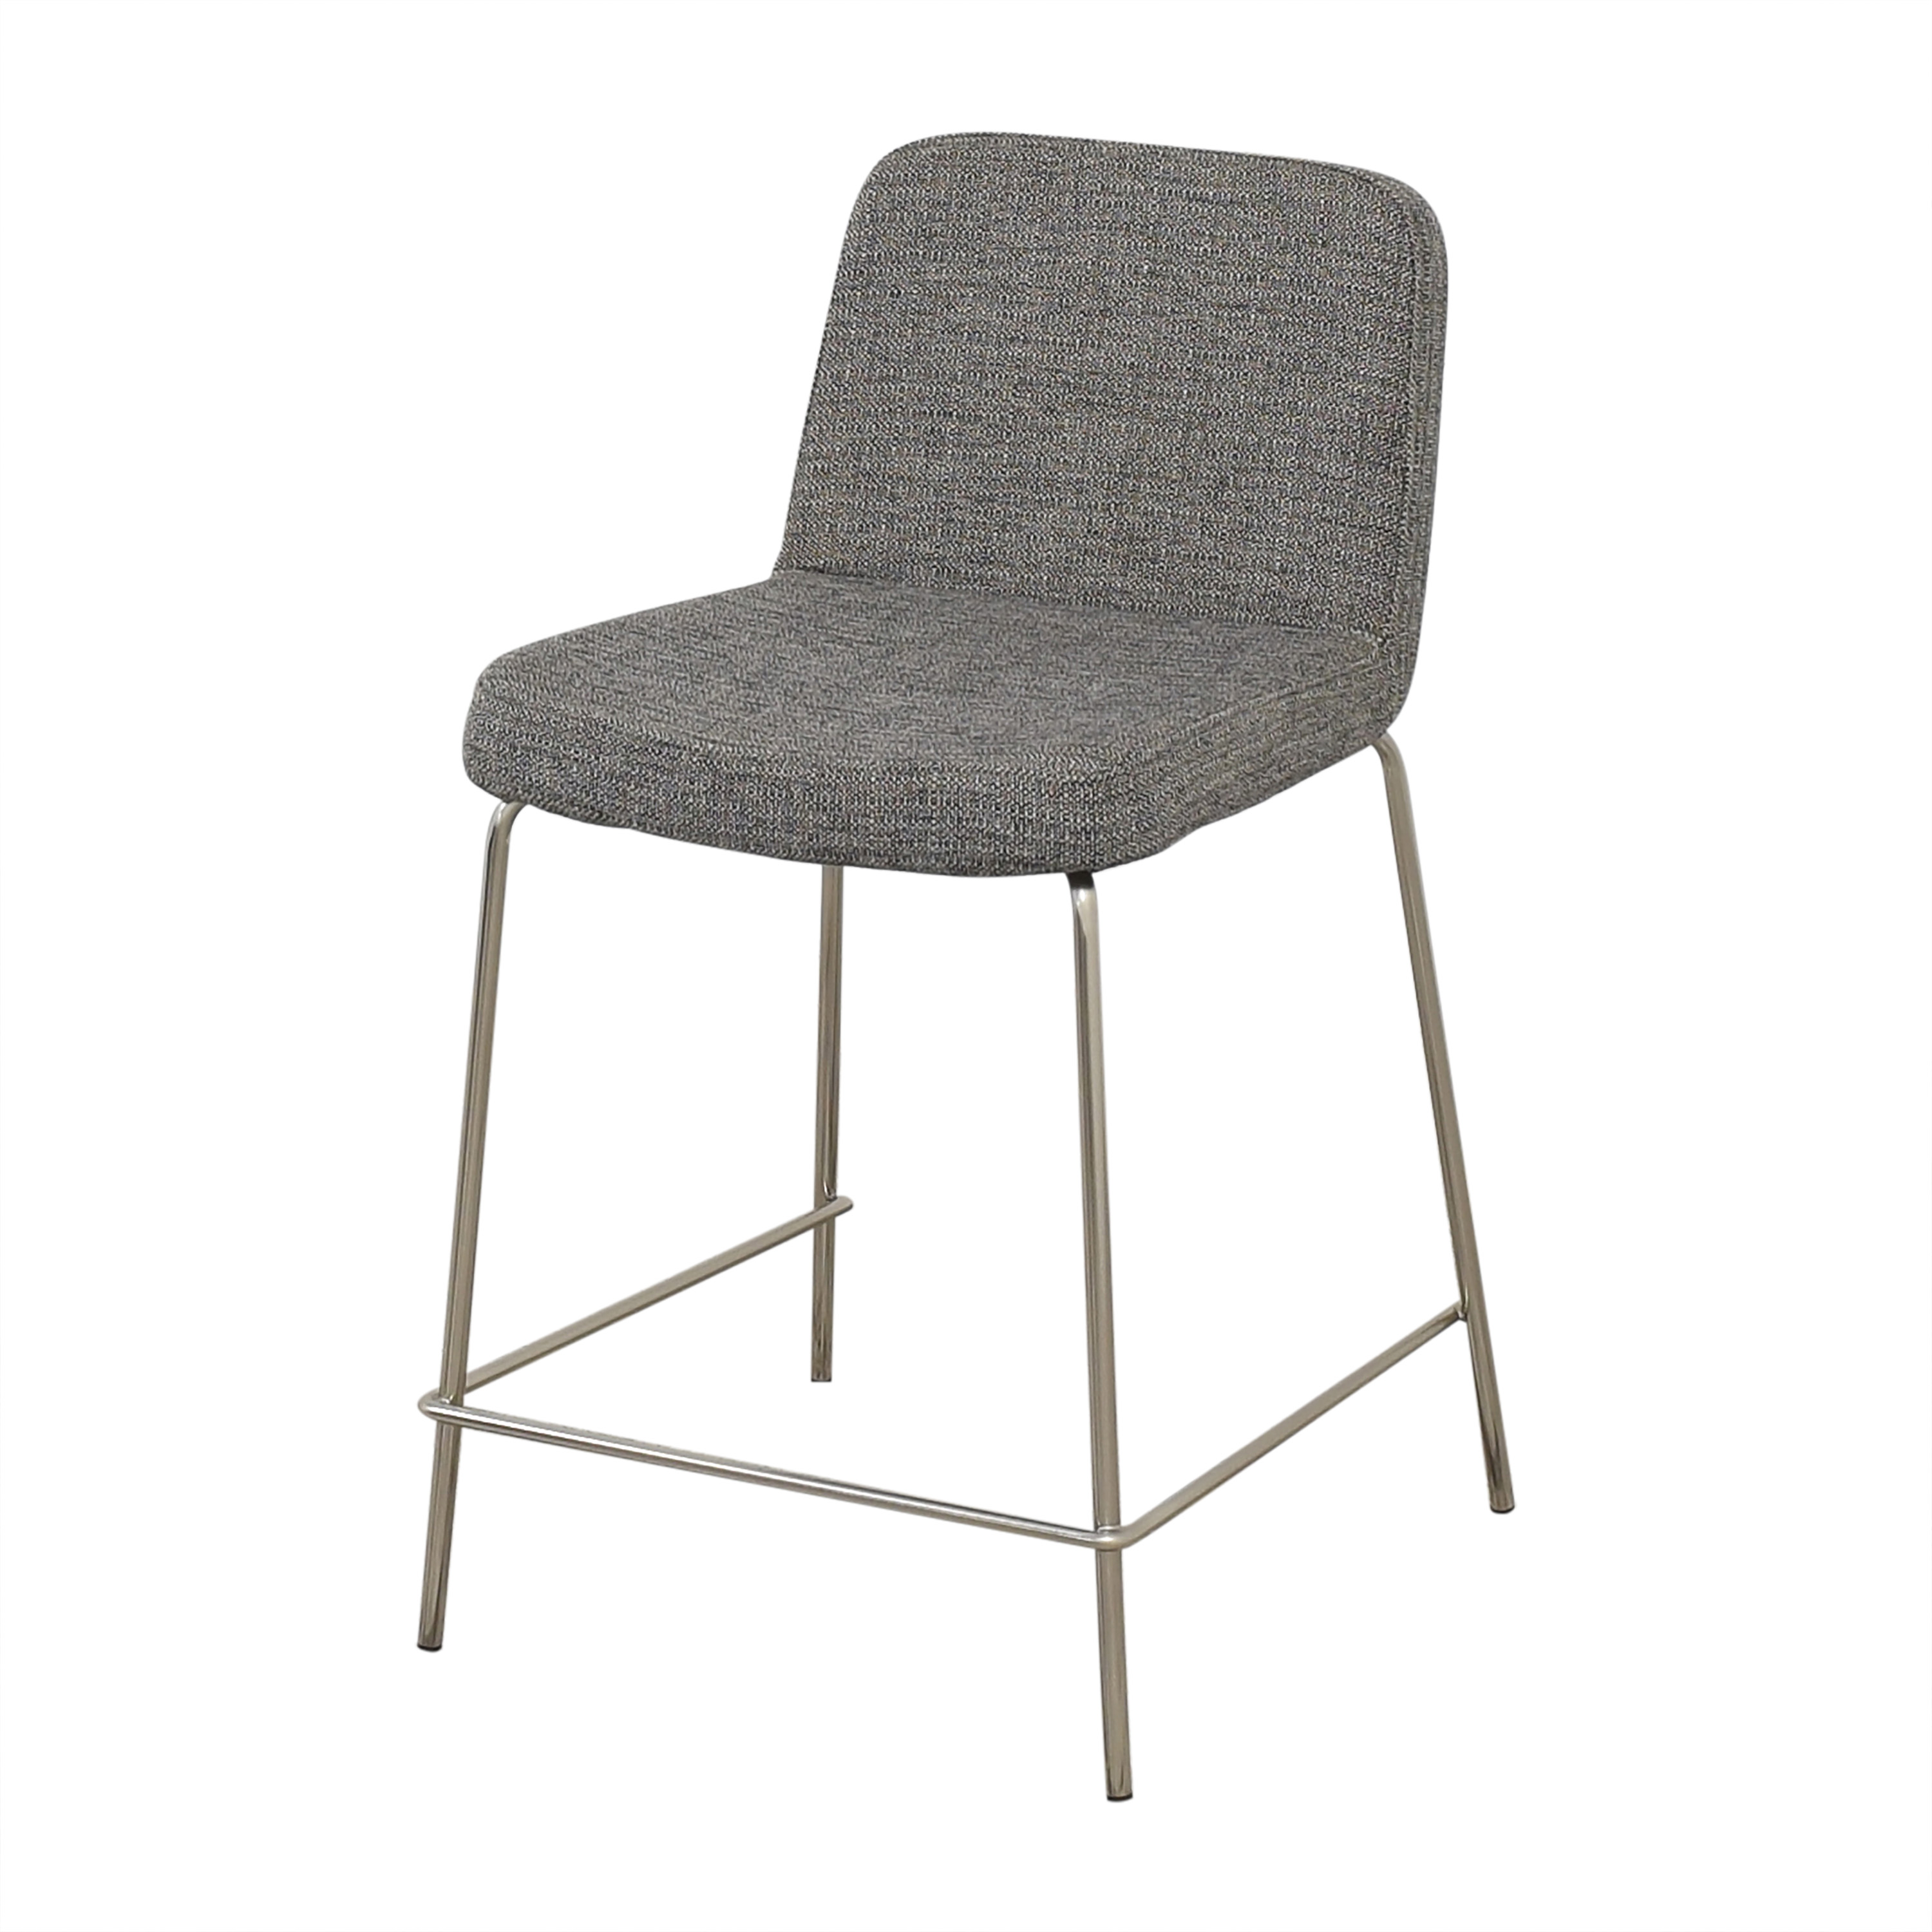 CB2 CB2 Charlie Counter Stools discount